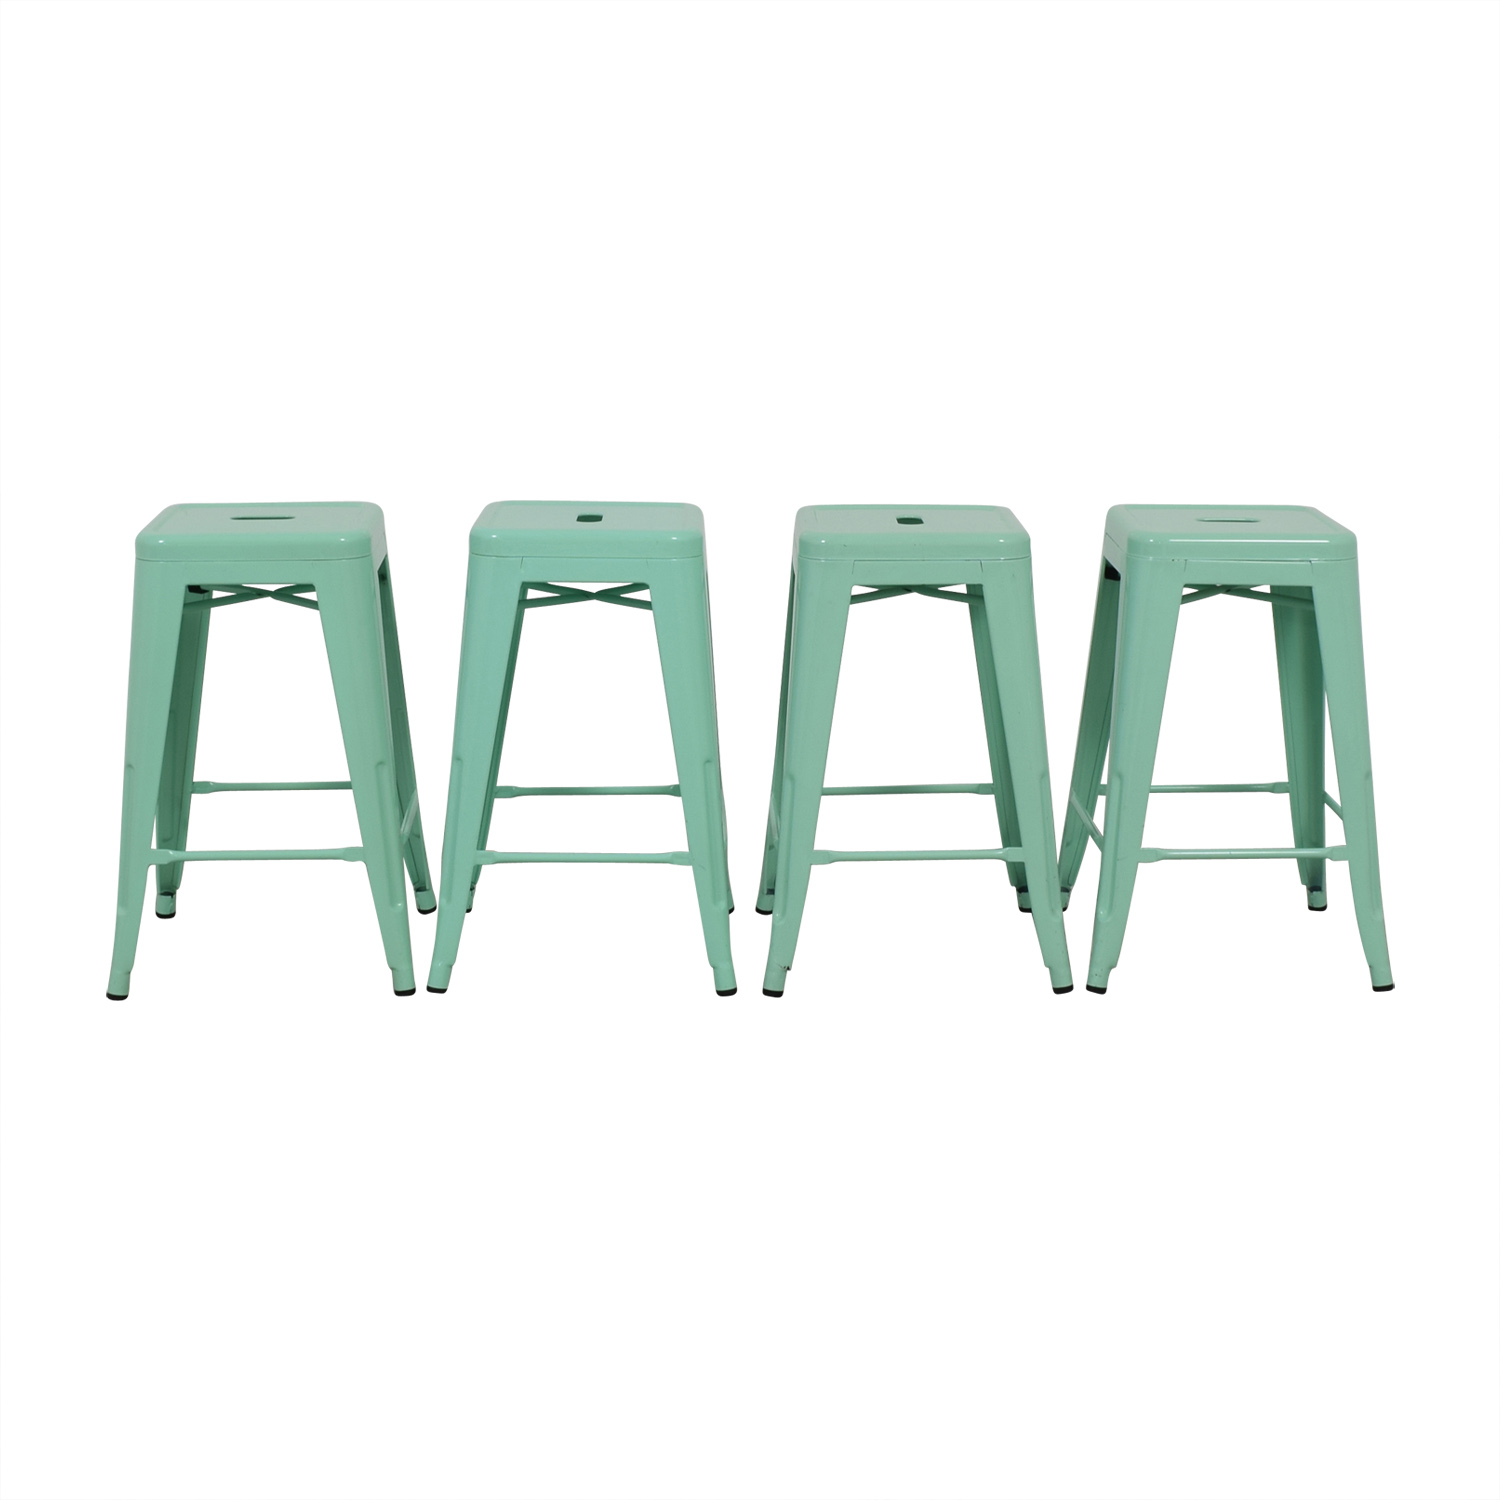 Green Metal Counter Stools used